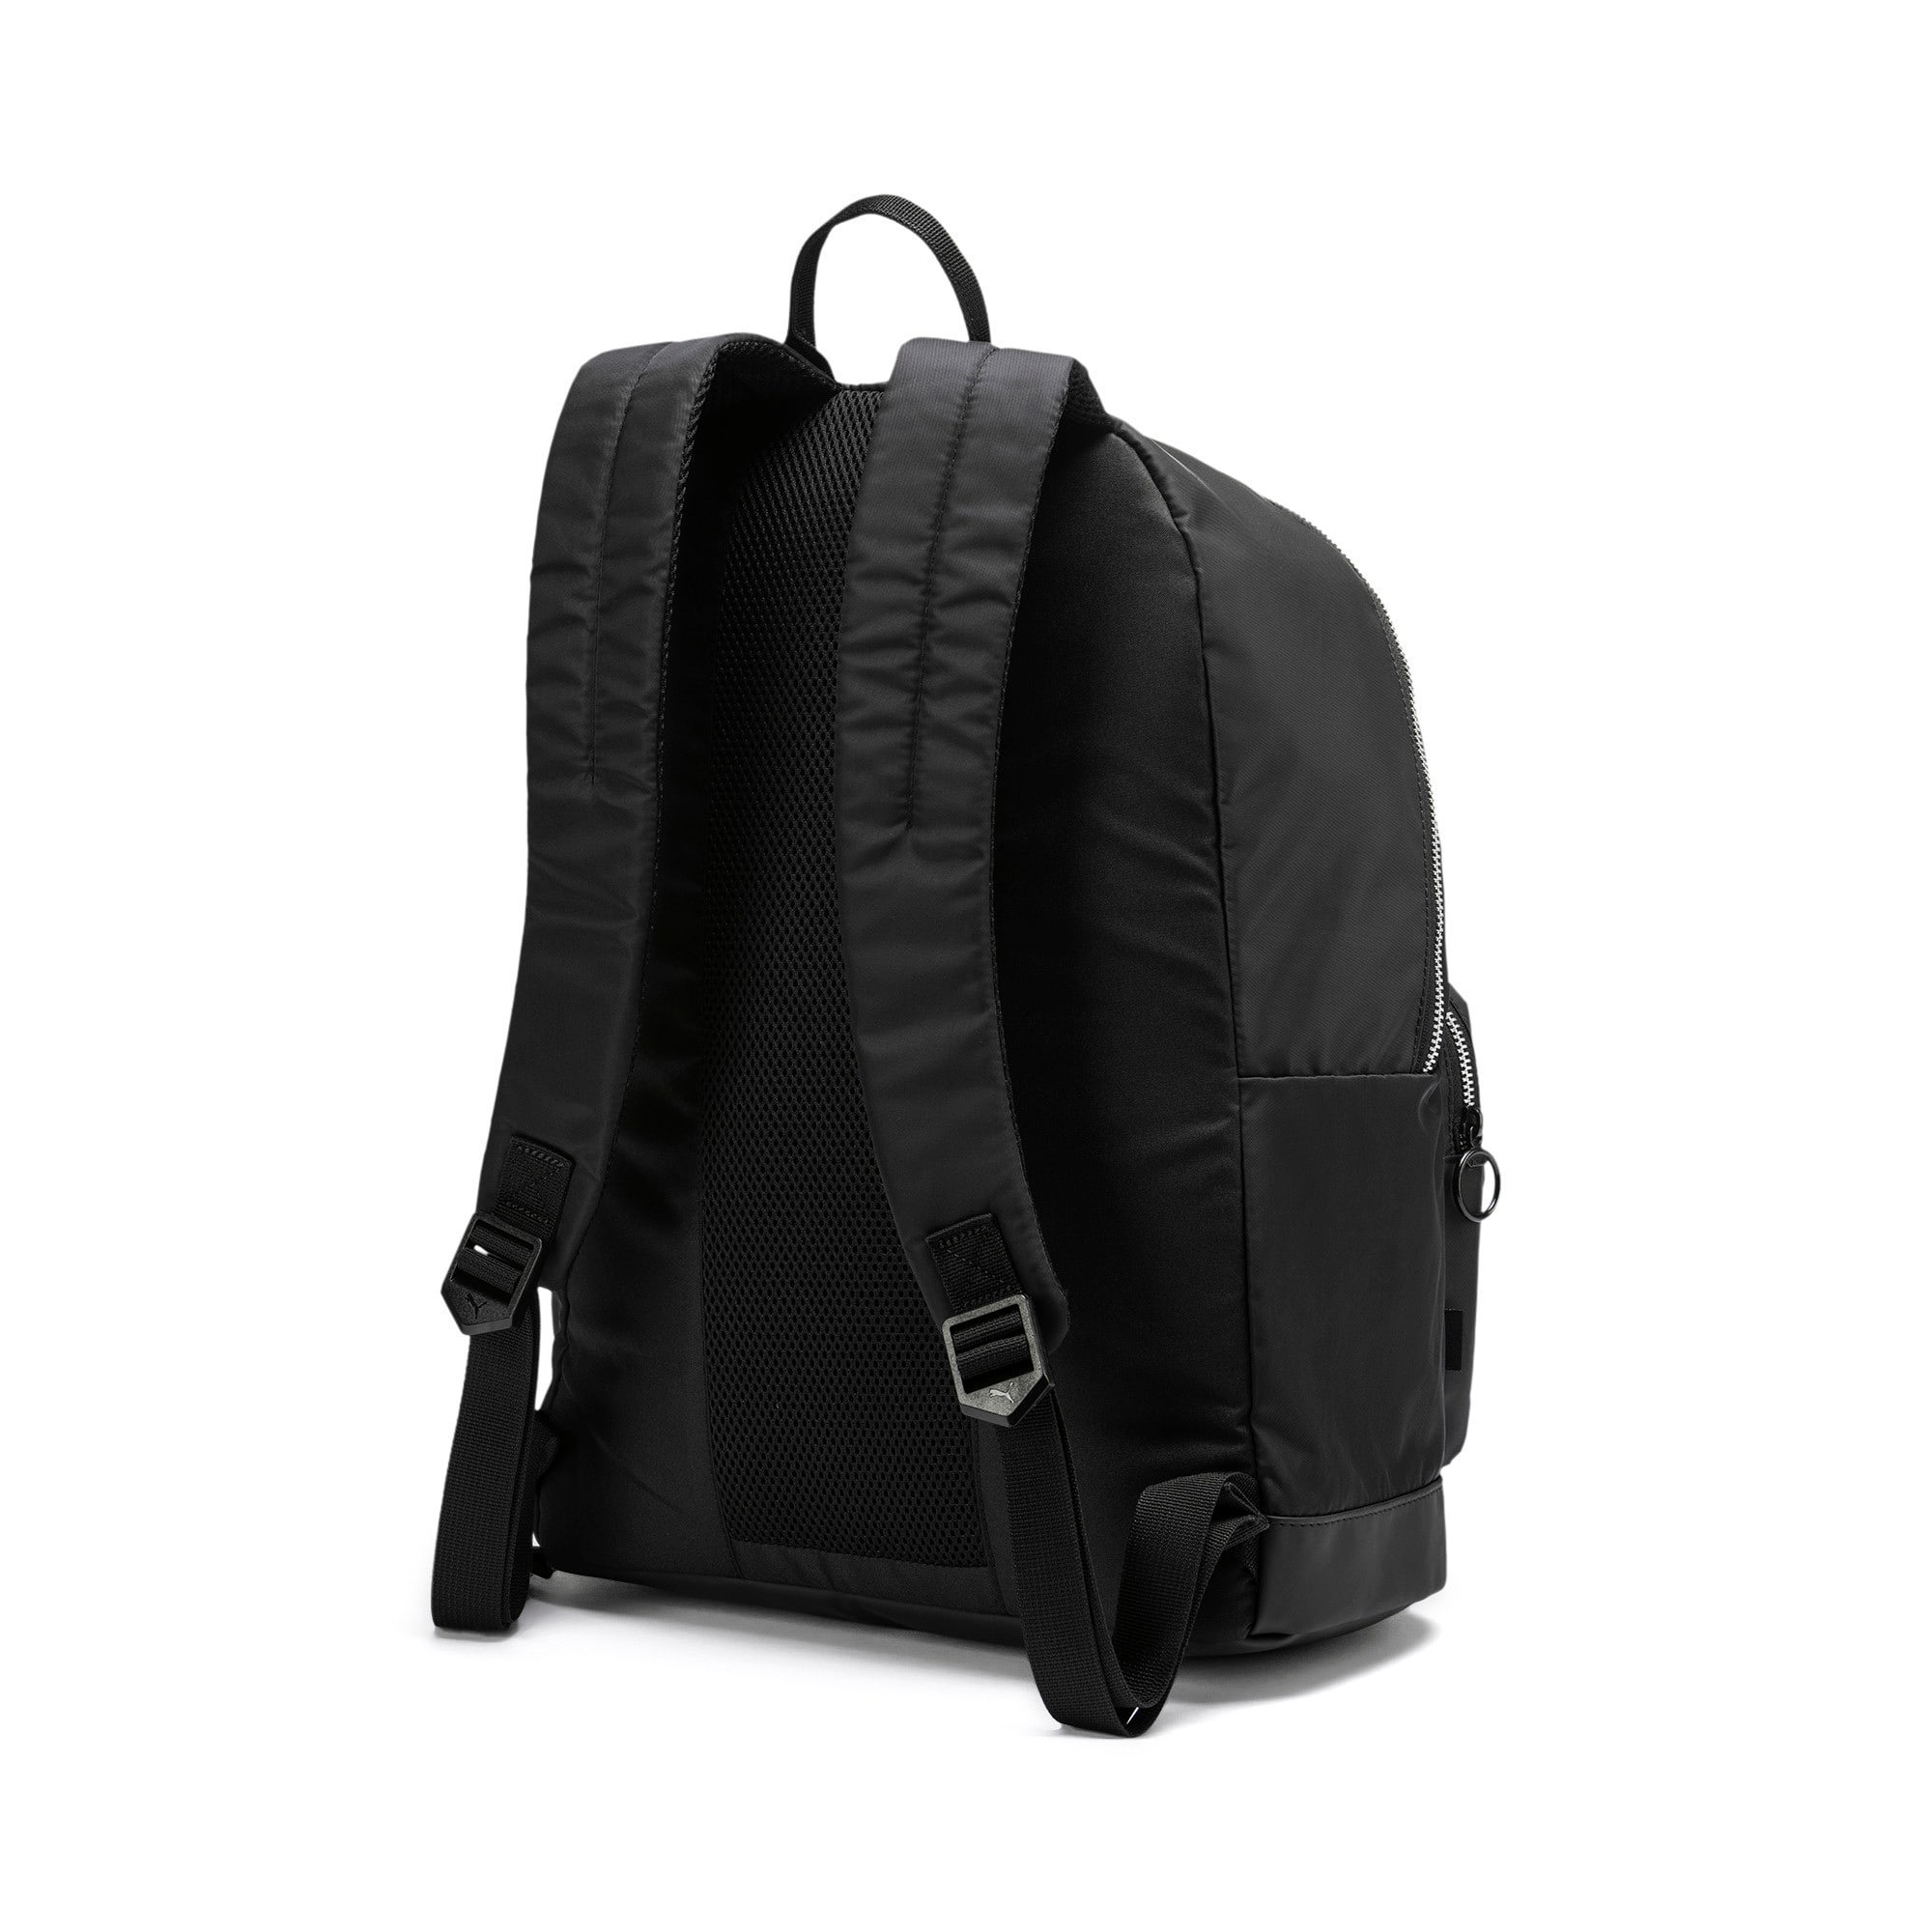 Thumbnail 3 of Originals Trend Backpack, Puma Black, medium